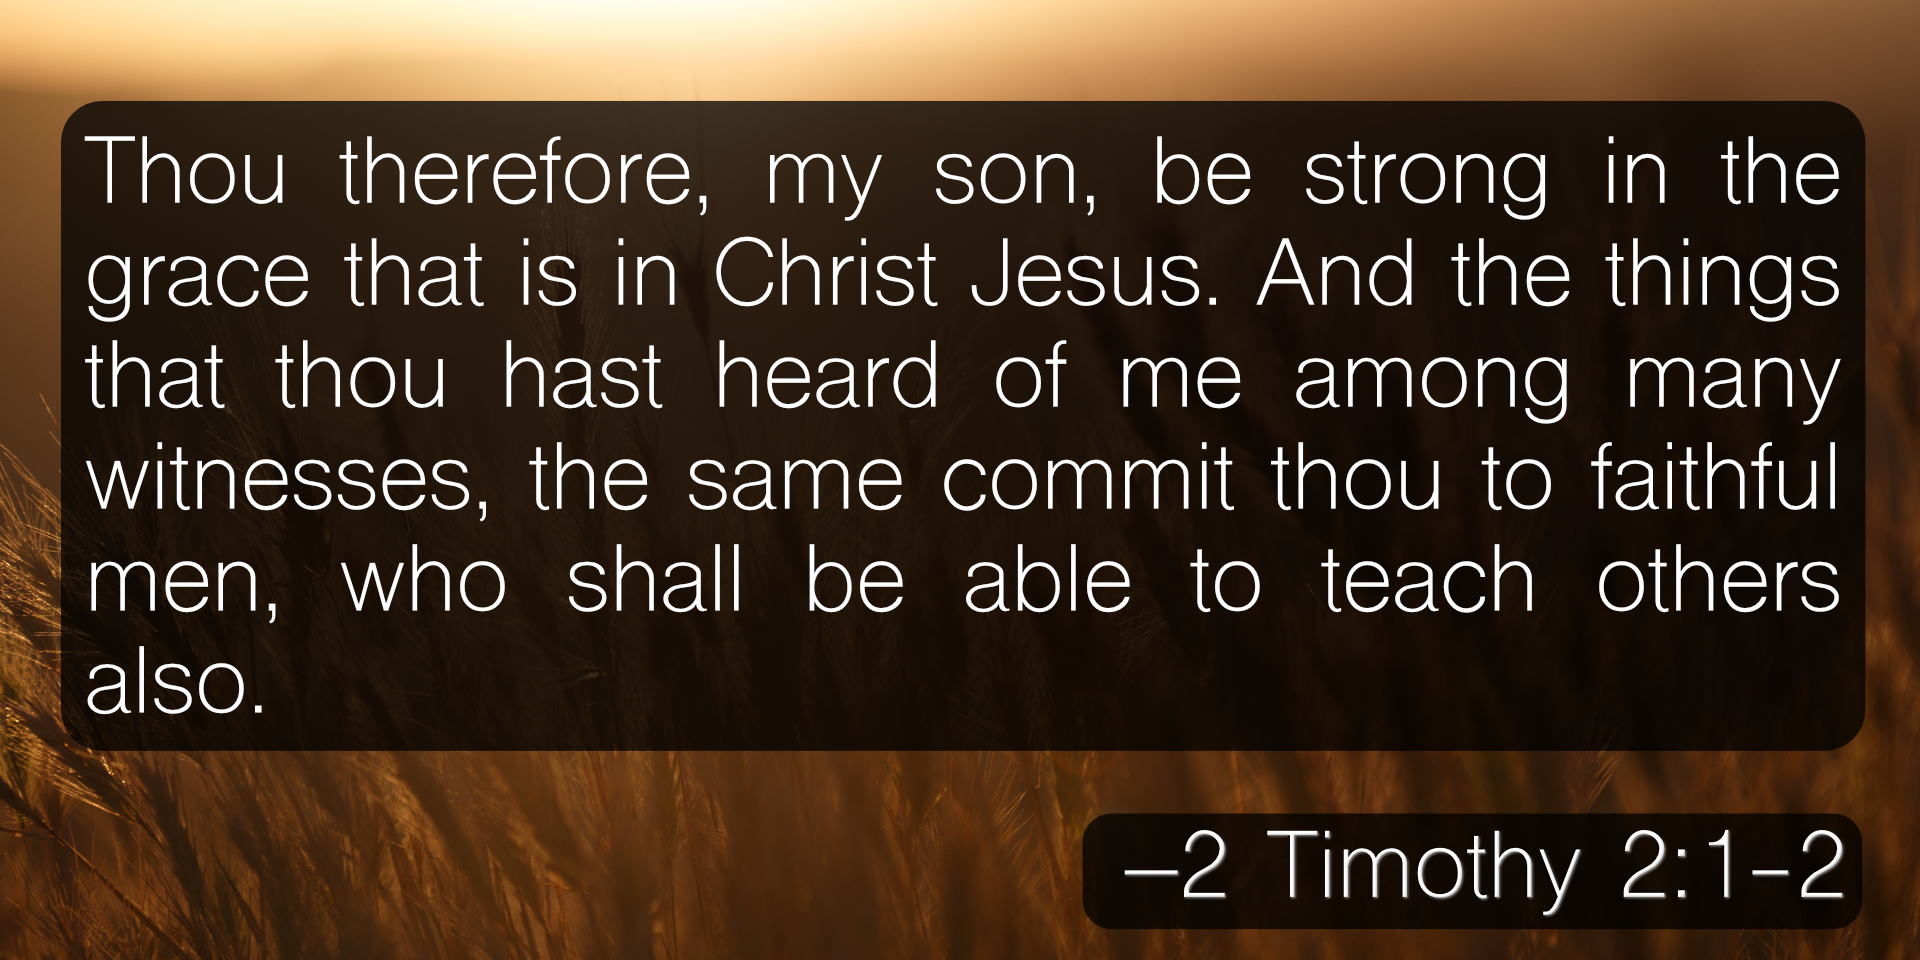 Thou therefore, my son, be strong in the grace that is in Christ Jesus. And the things that thou hast heard of me among many witnesses, the same commit thou to faithful men, who shall be able to teach others also. –2 Timothy 2:1-2